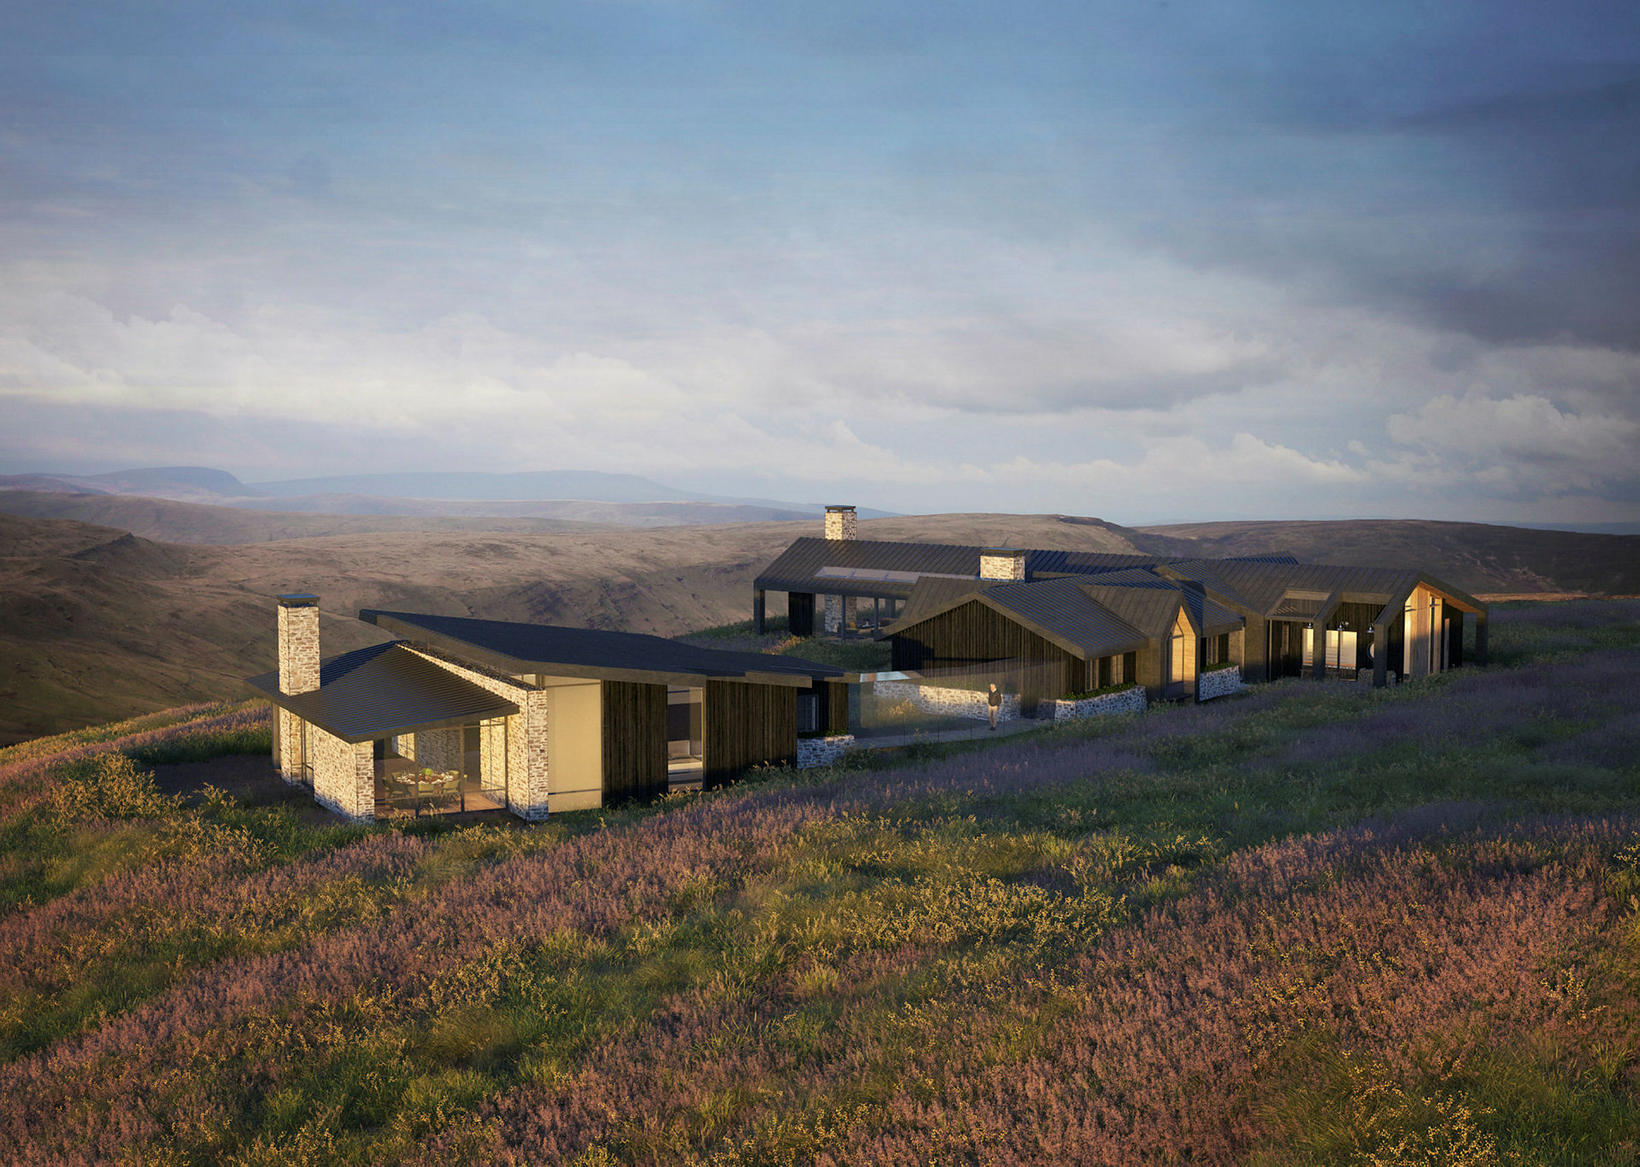 This is what the new fishing lodge by Miðfjarðará river …